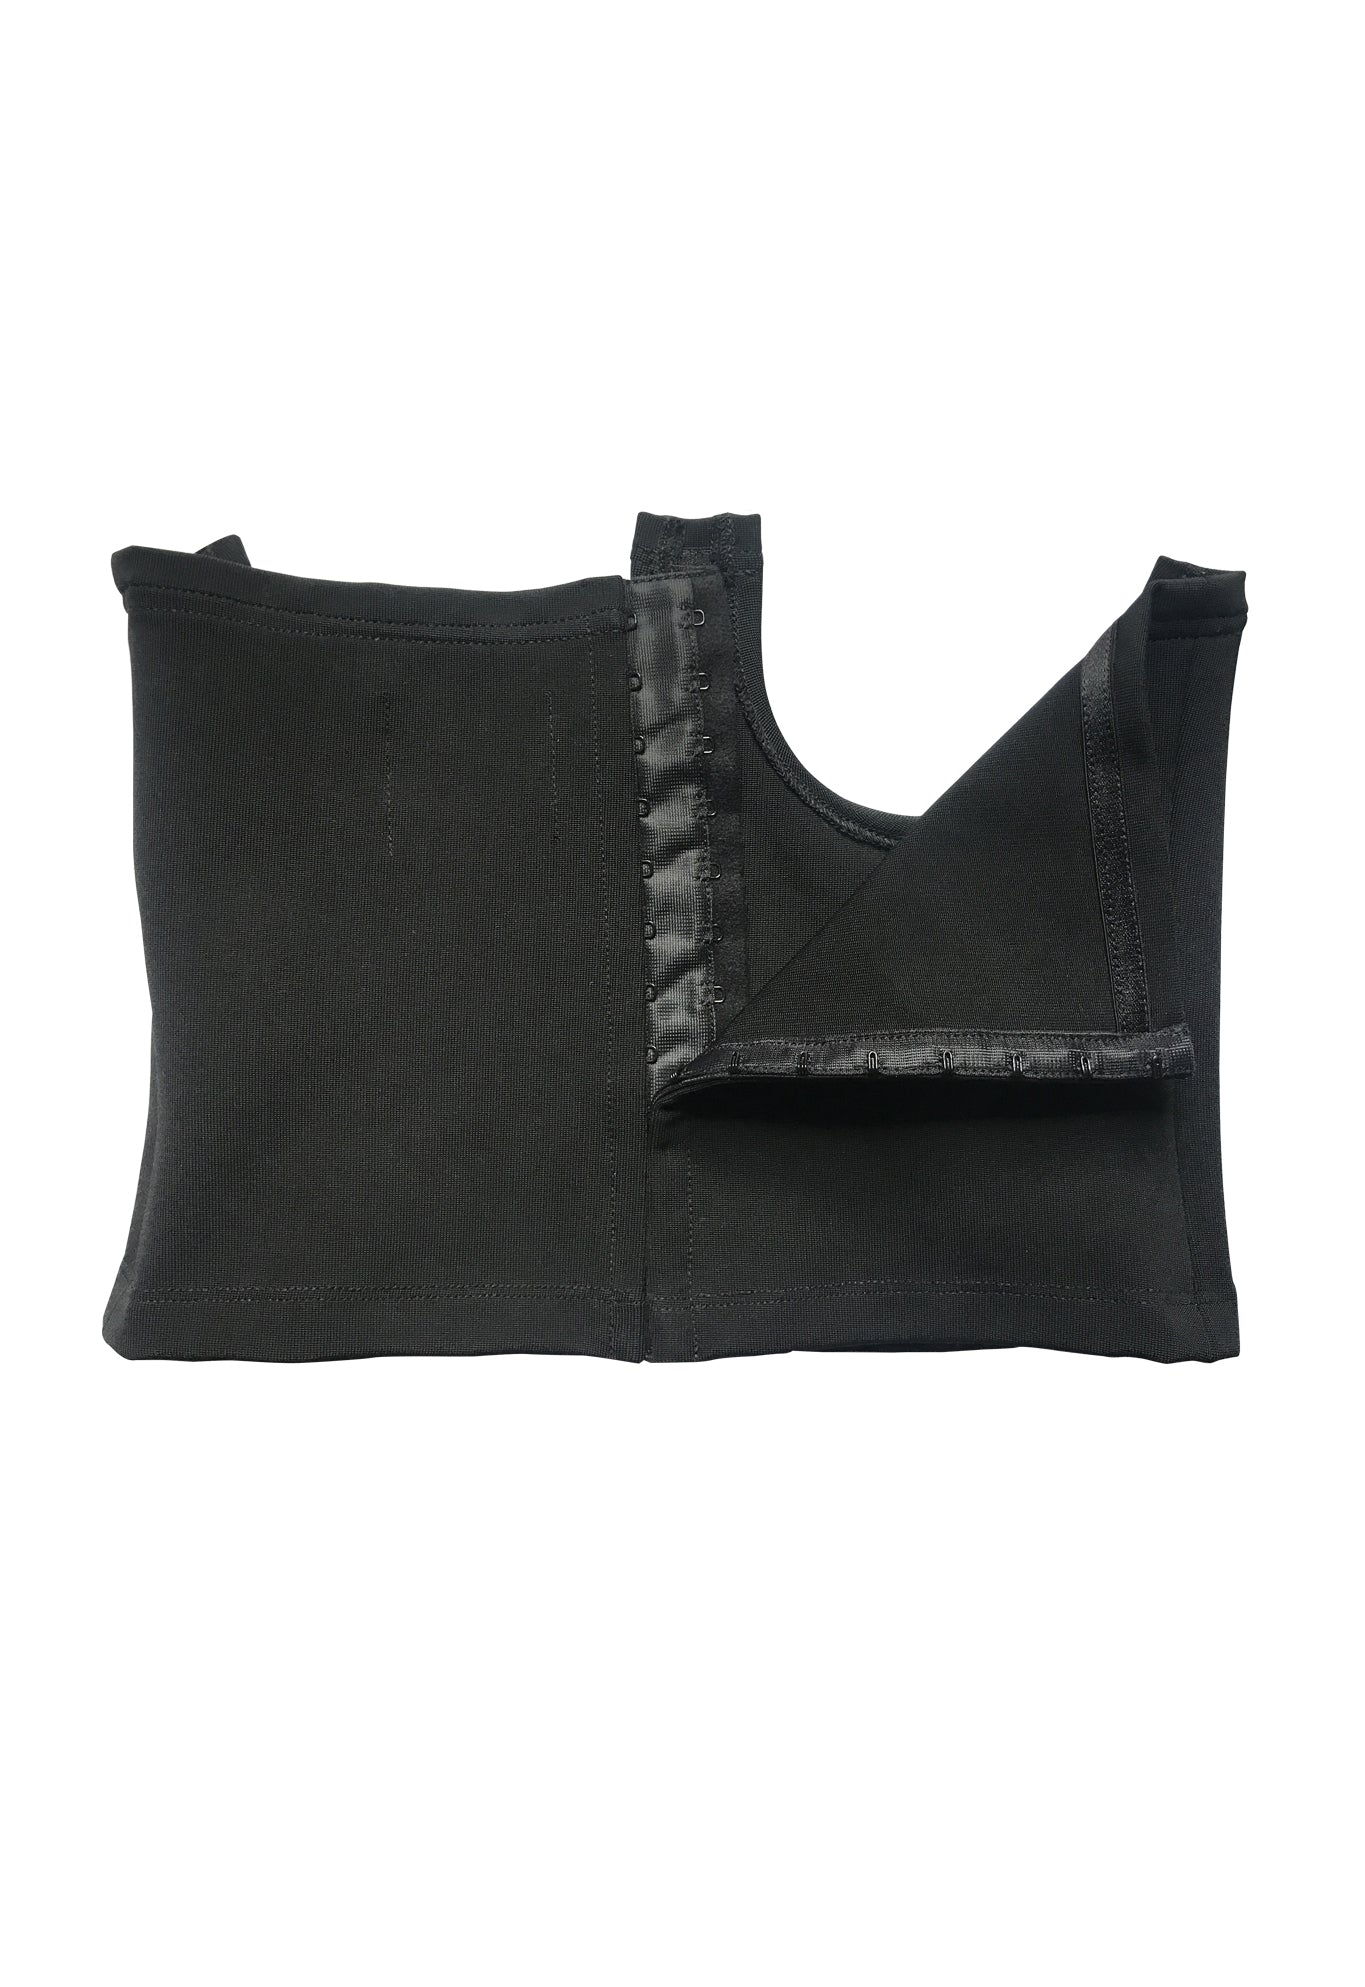 STRUCTURED CORSET BLACK